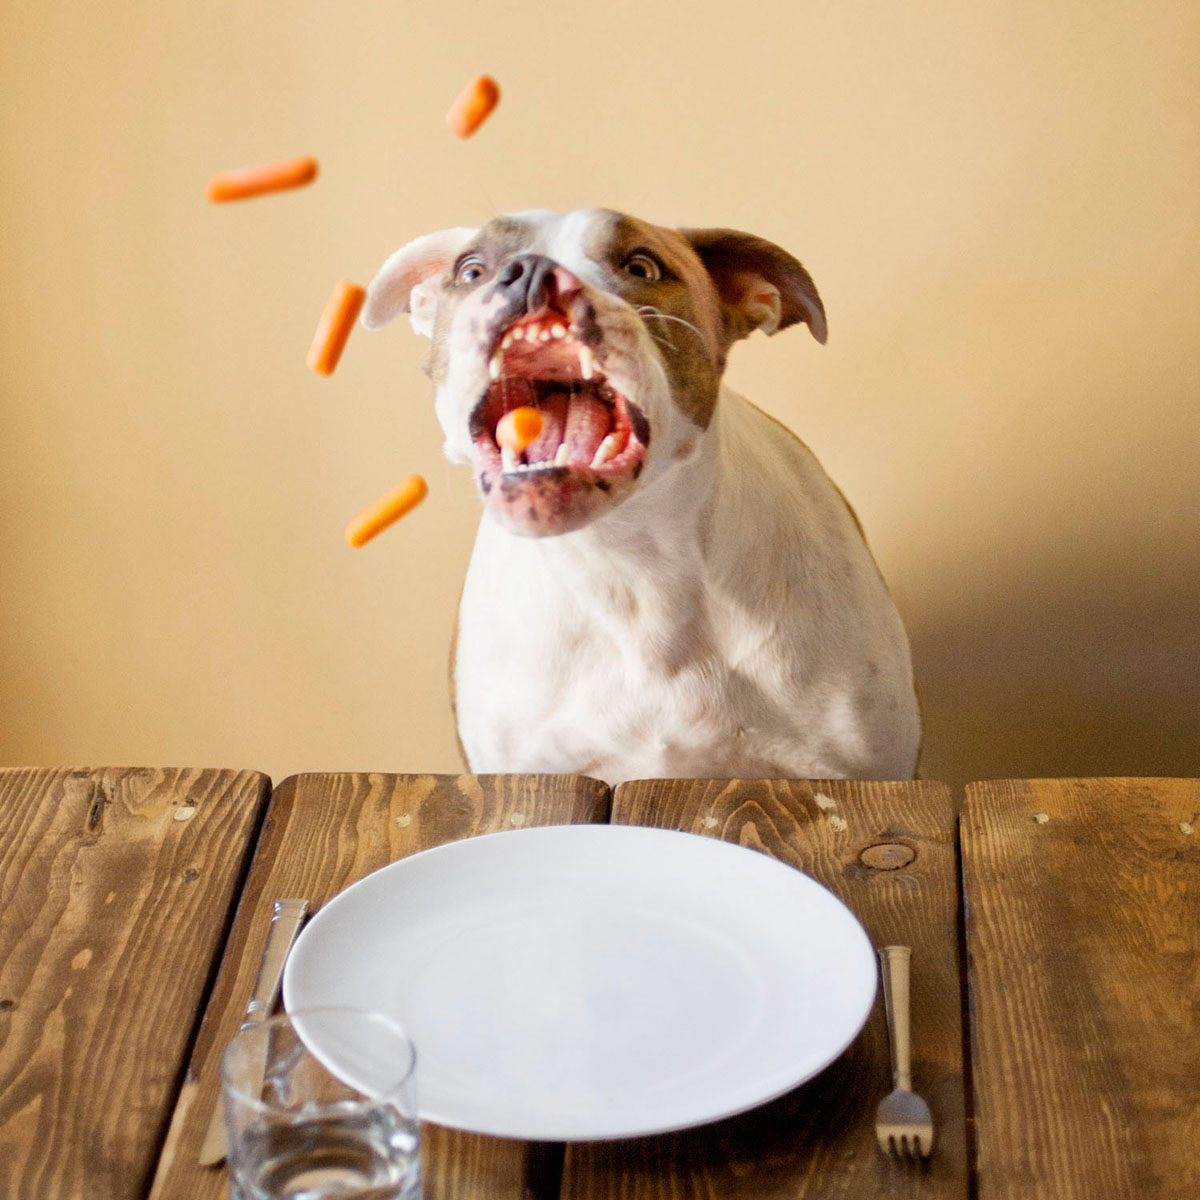 Puka the dog catches carrots